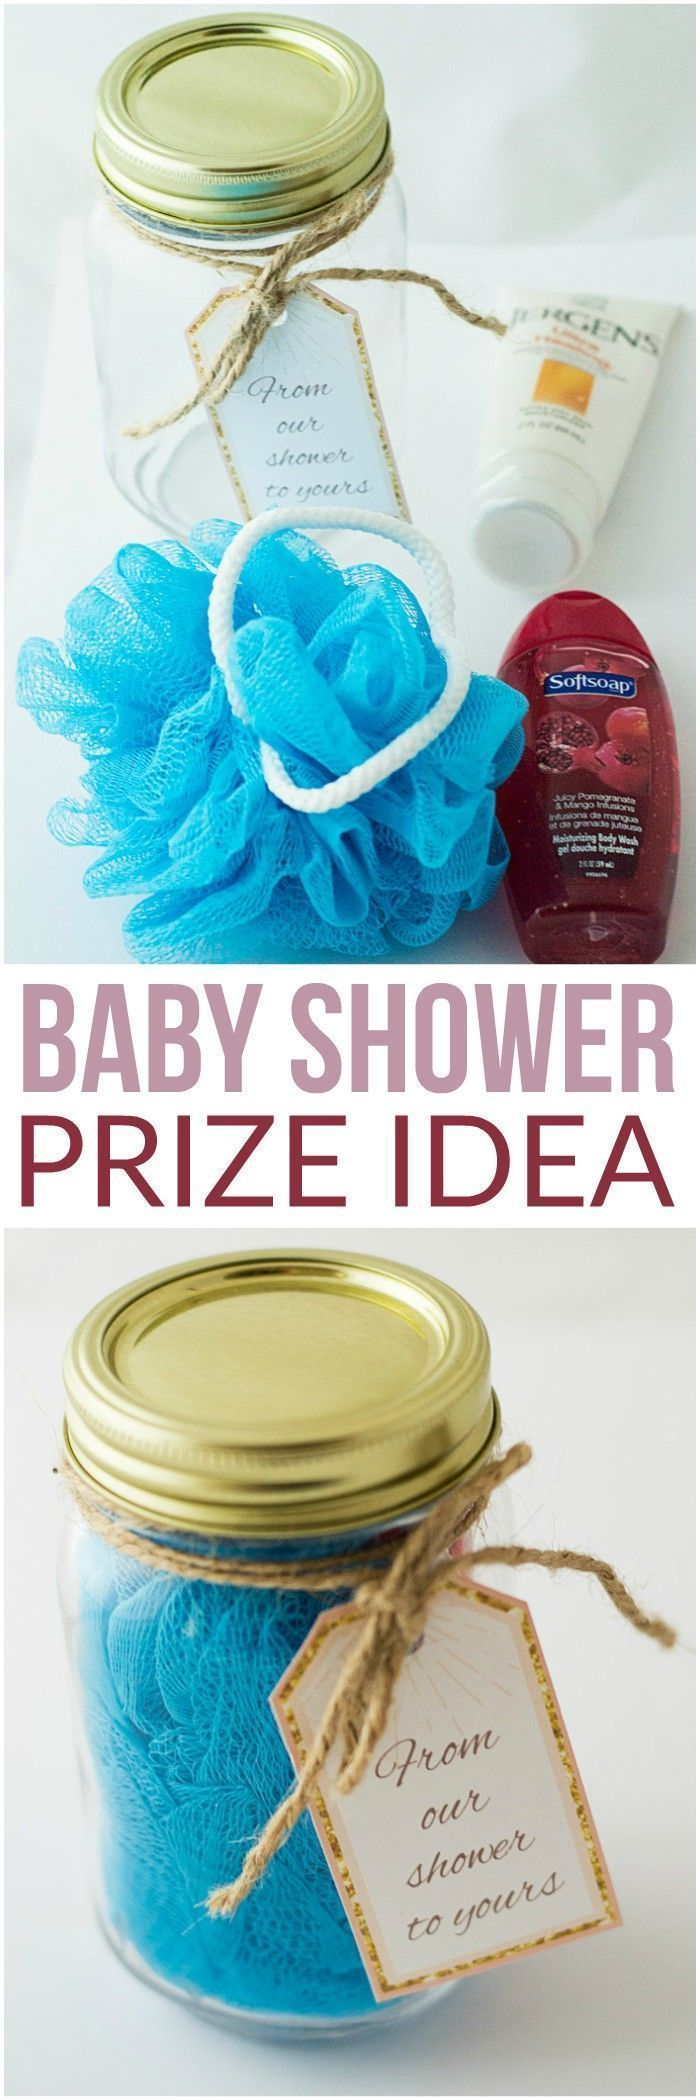 Cheap Baby Shower Prize Idea + Pink and Gold Baby Shower